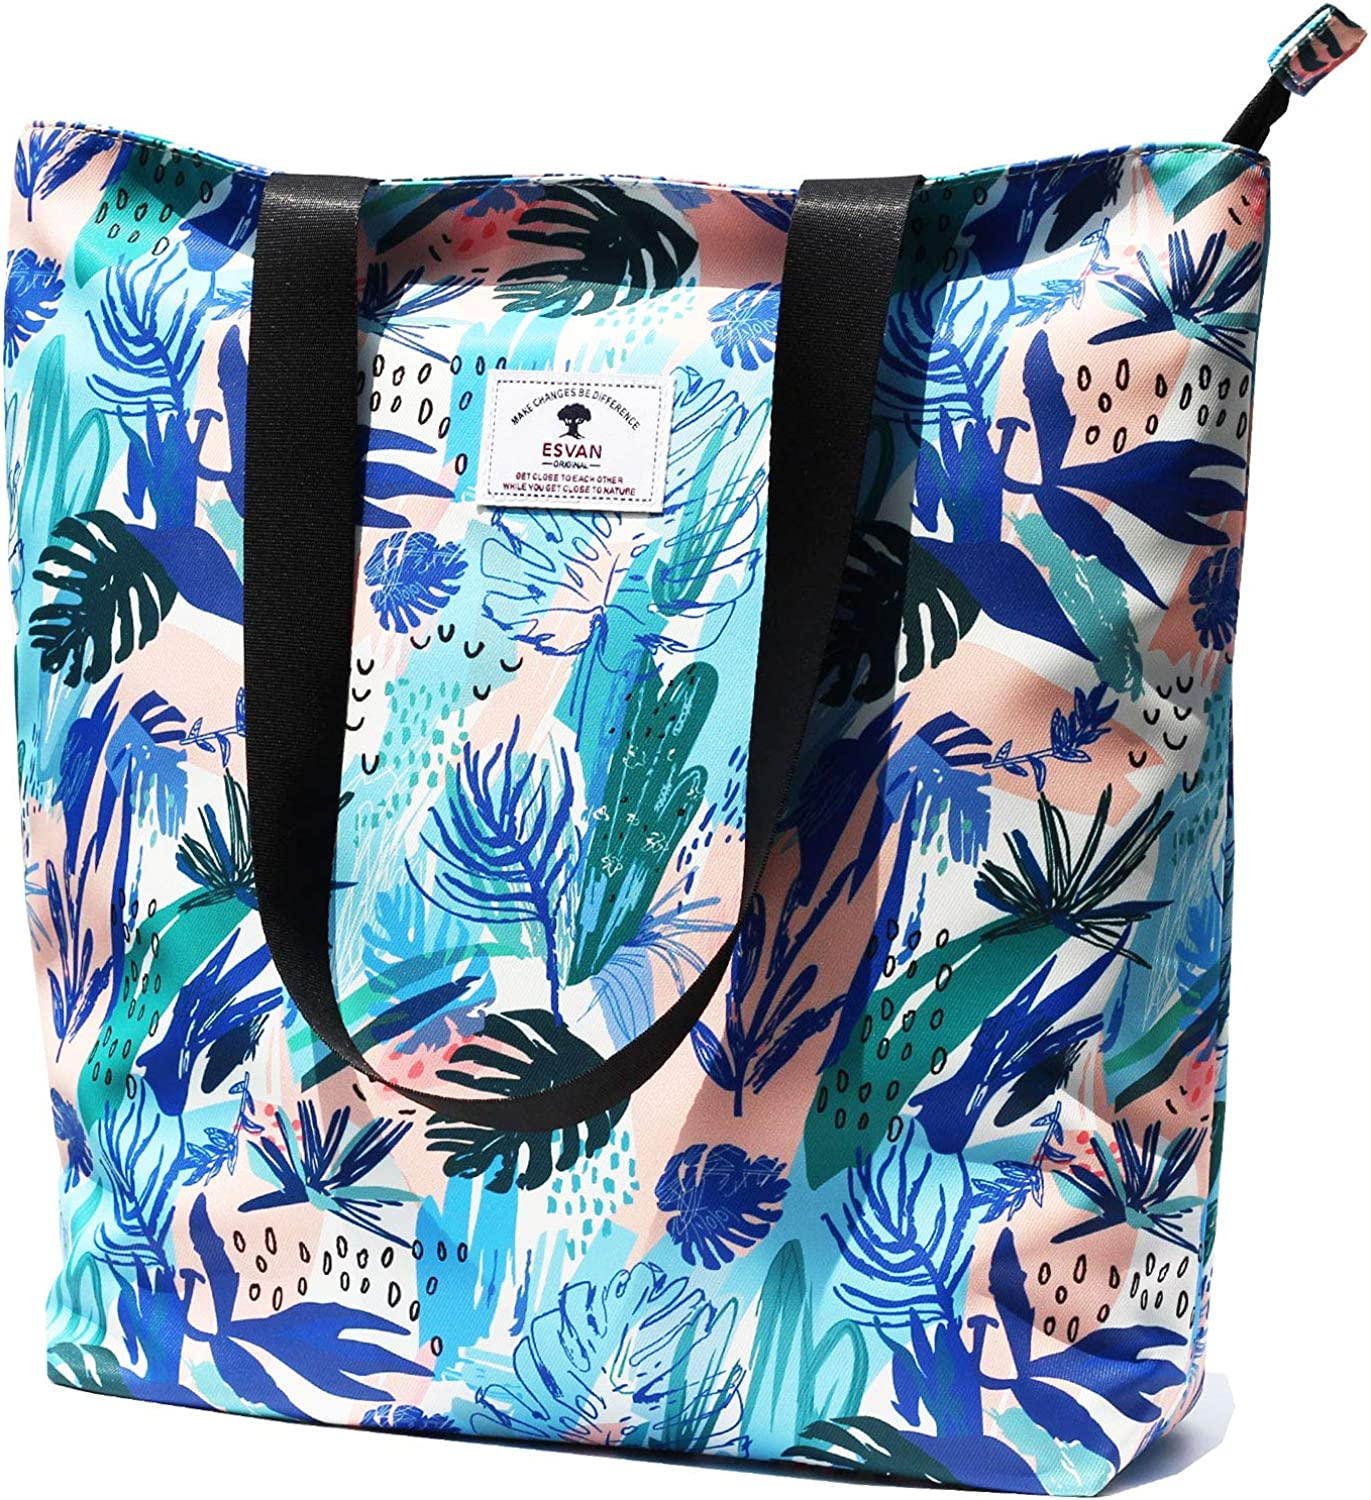 Bachelor and etc Grocery with Pocket I Design 20 Pilates Beach Floral Luxury Cotton Canvas Tote Bag for Daily Yoga Vacation